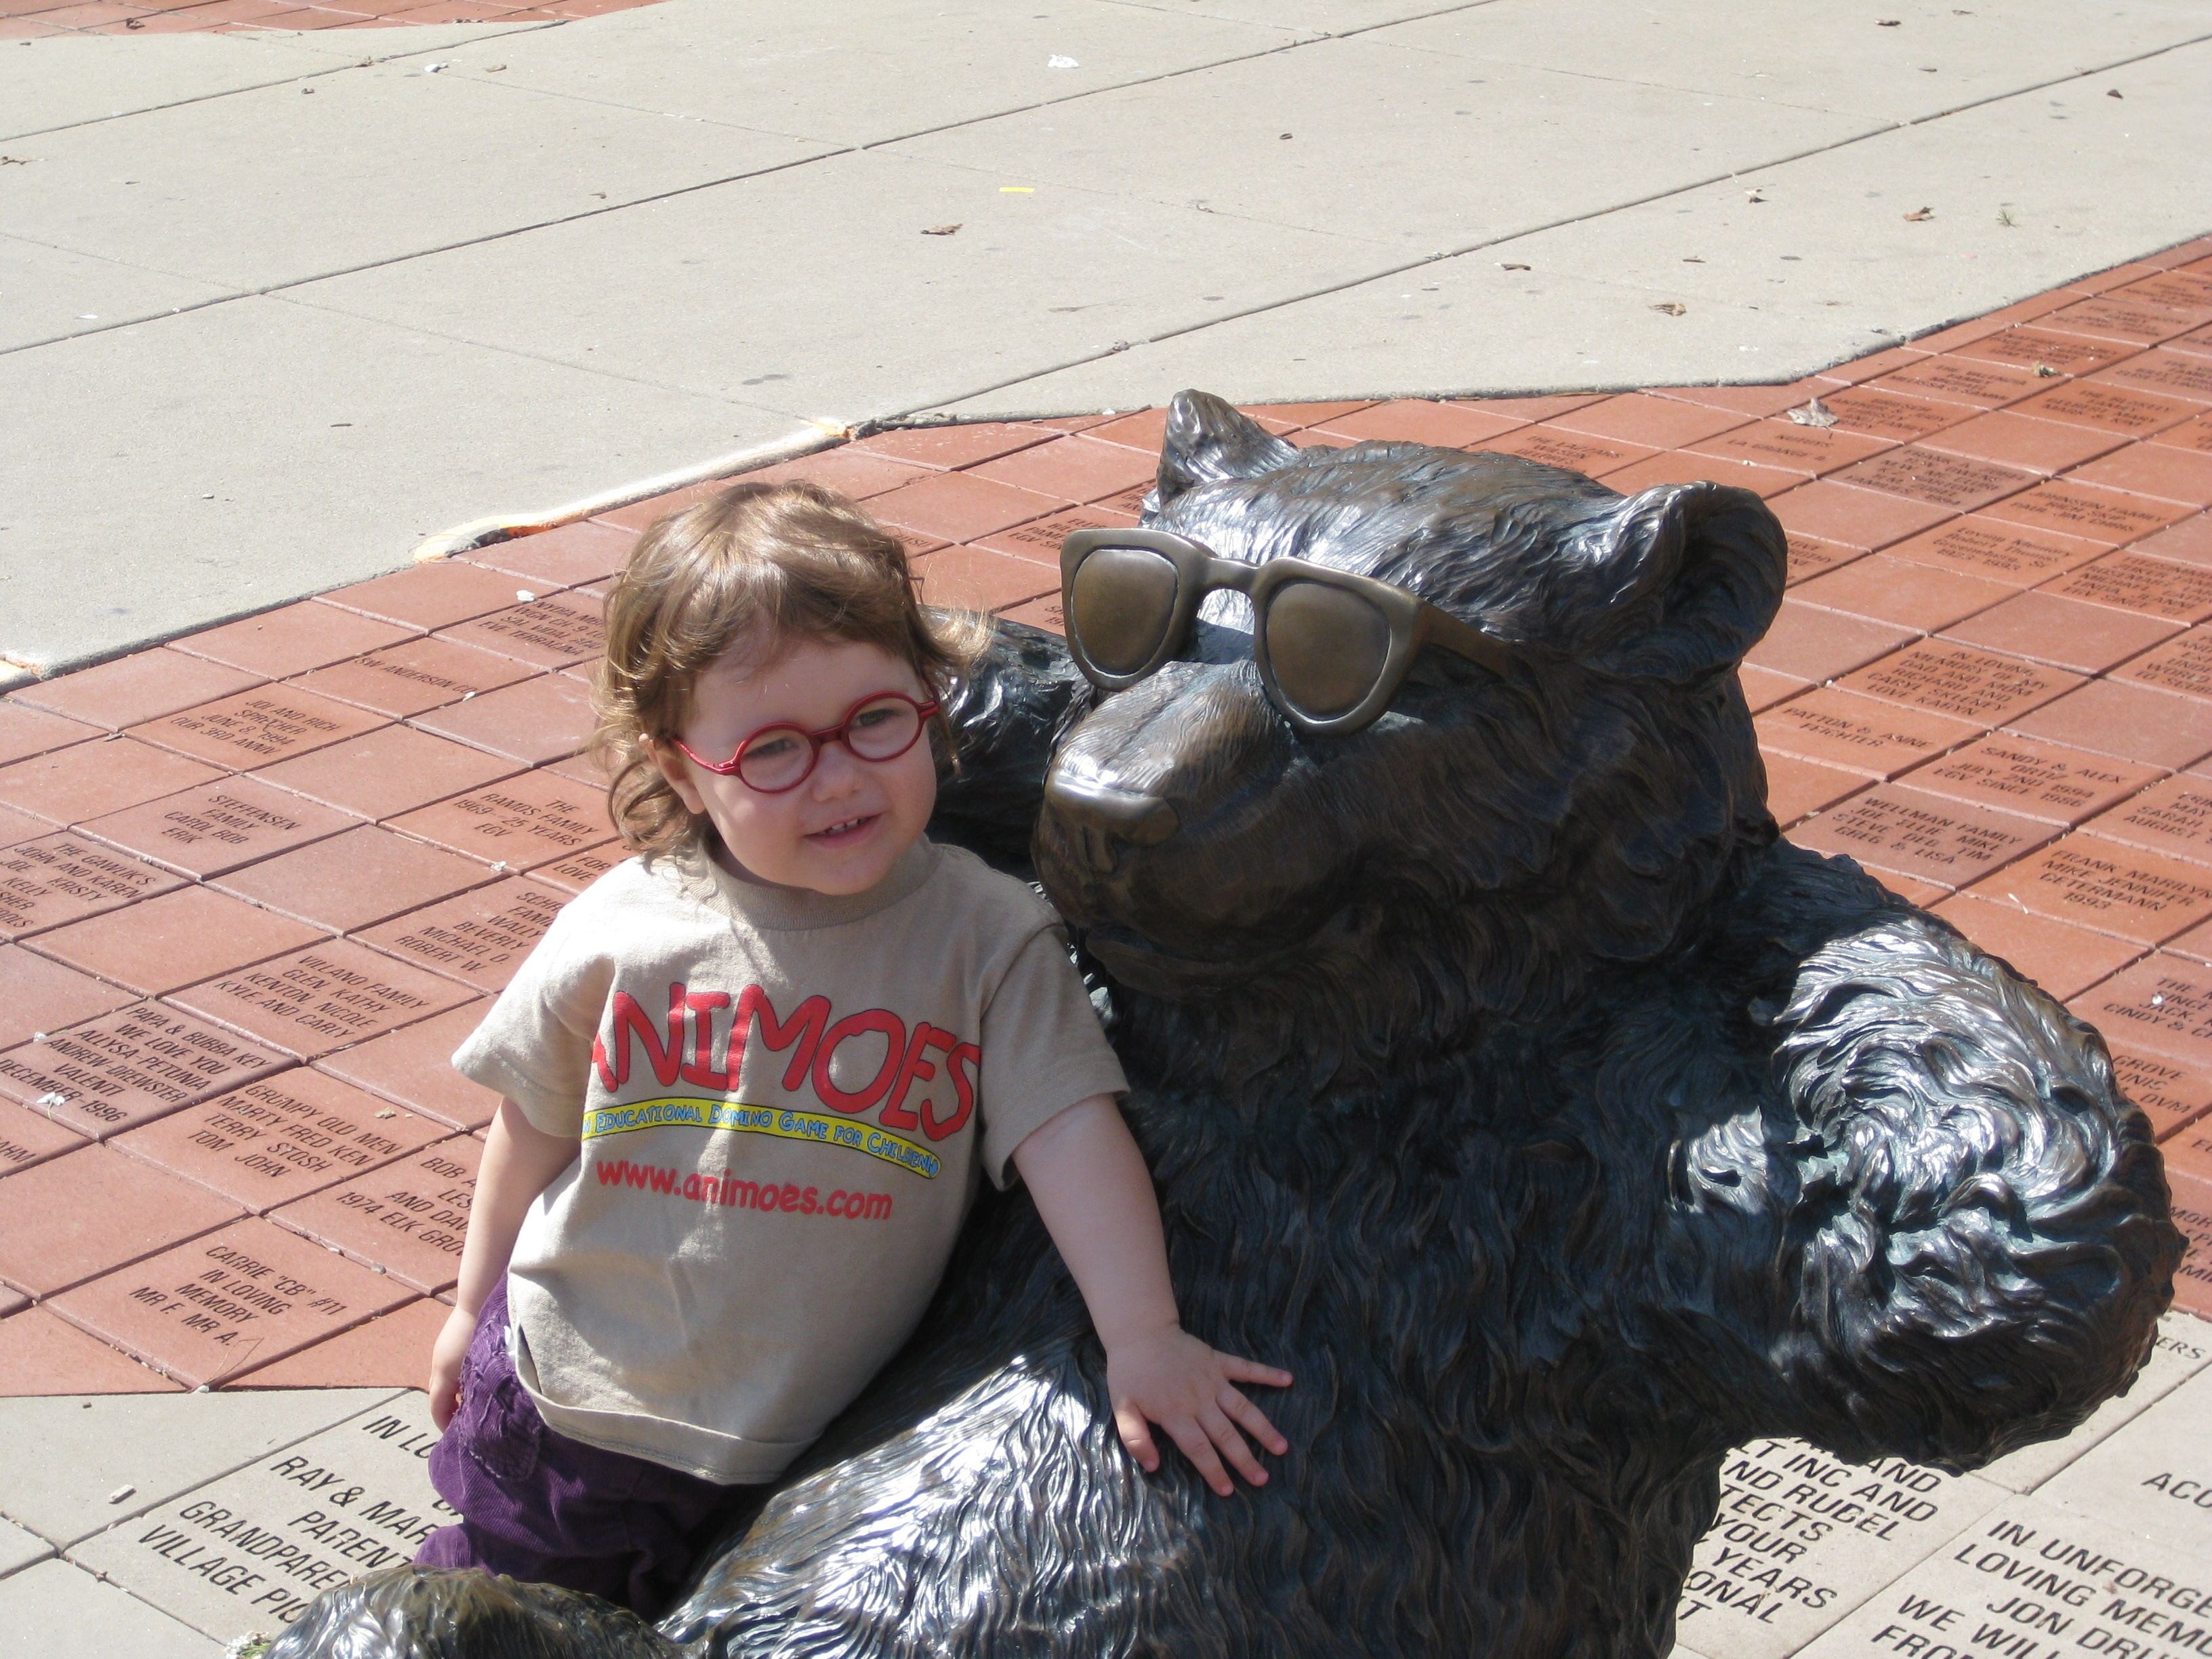 Glasses are uncommon on young children, and even less common in bear statues.